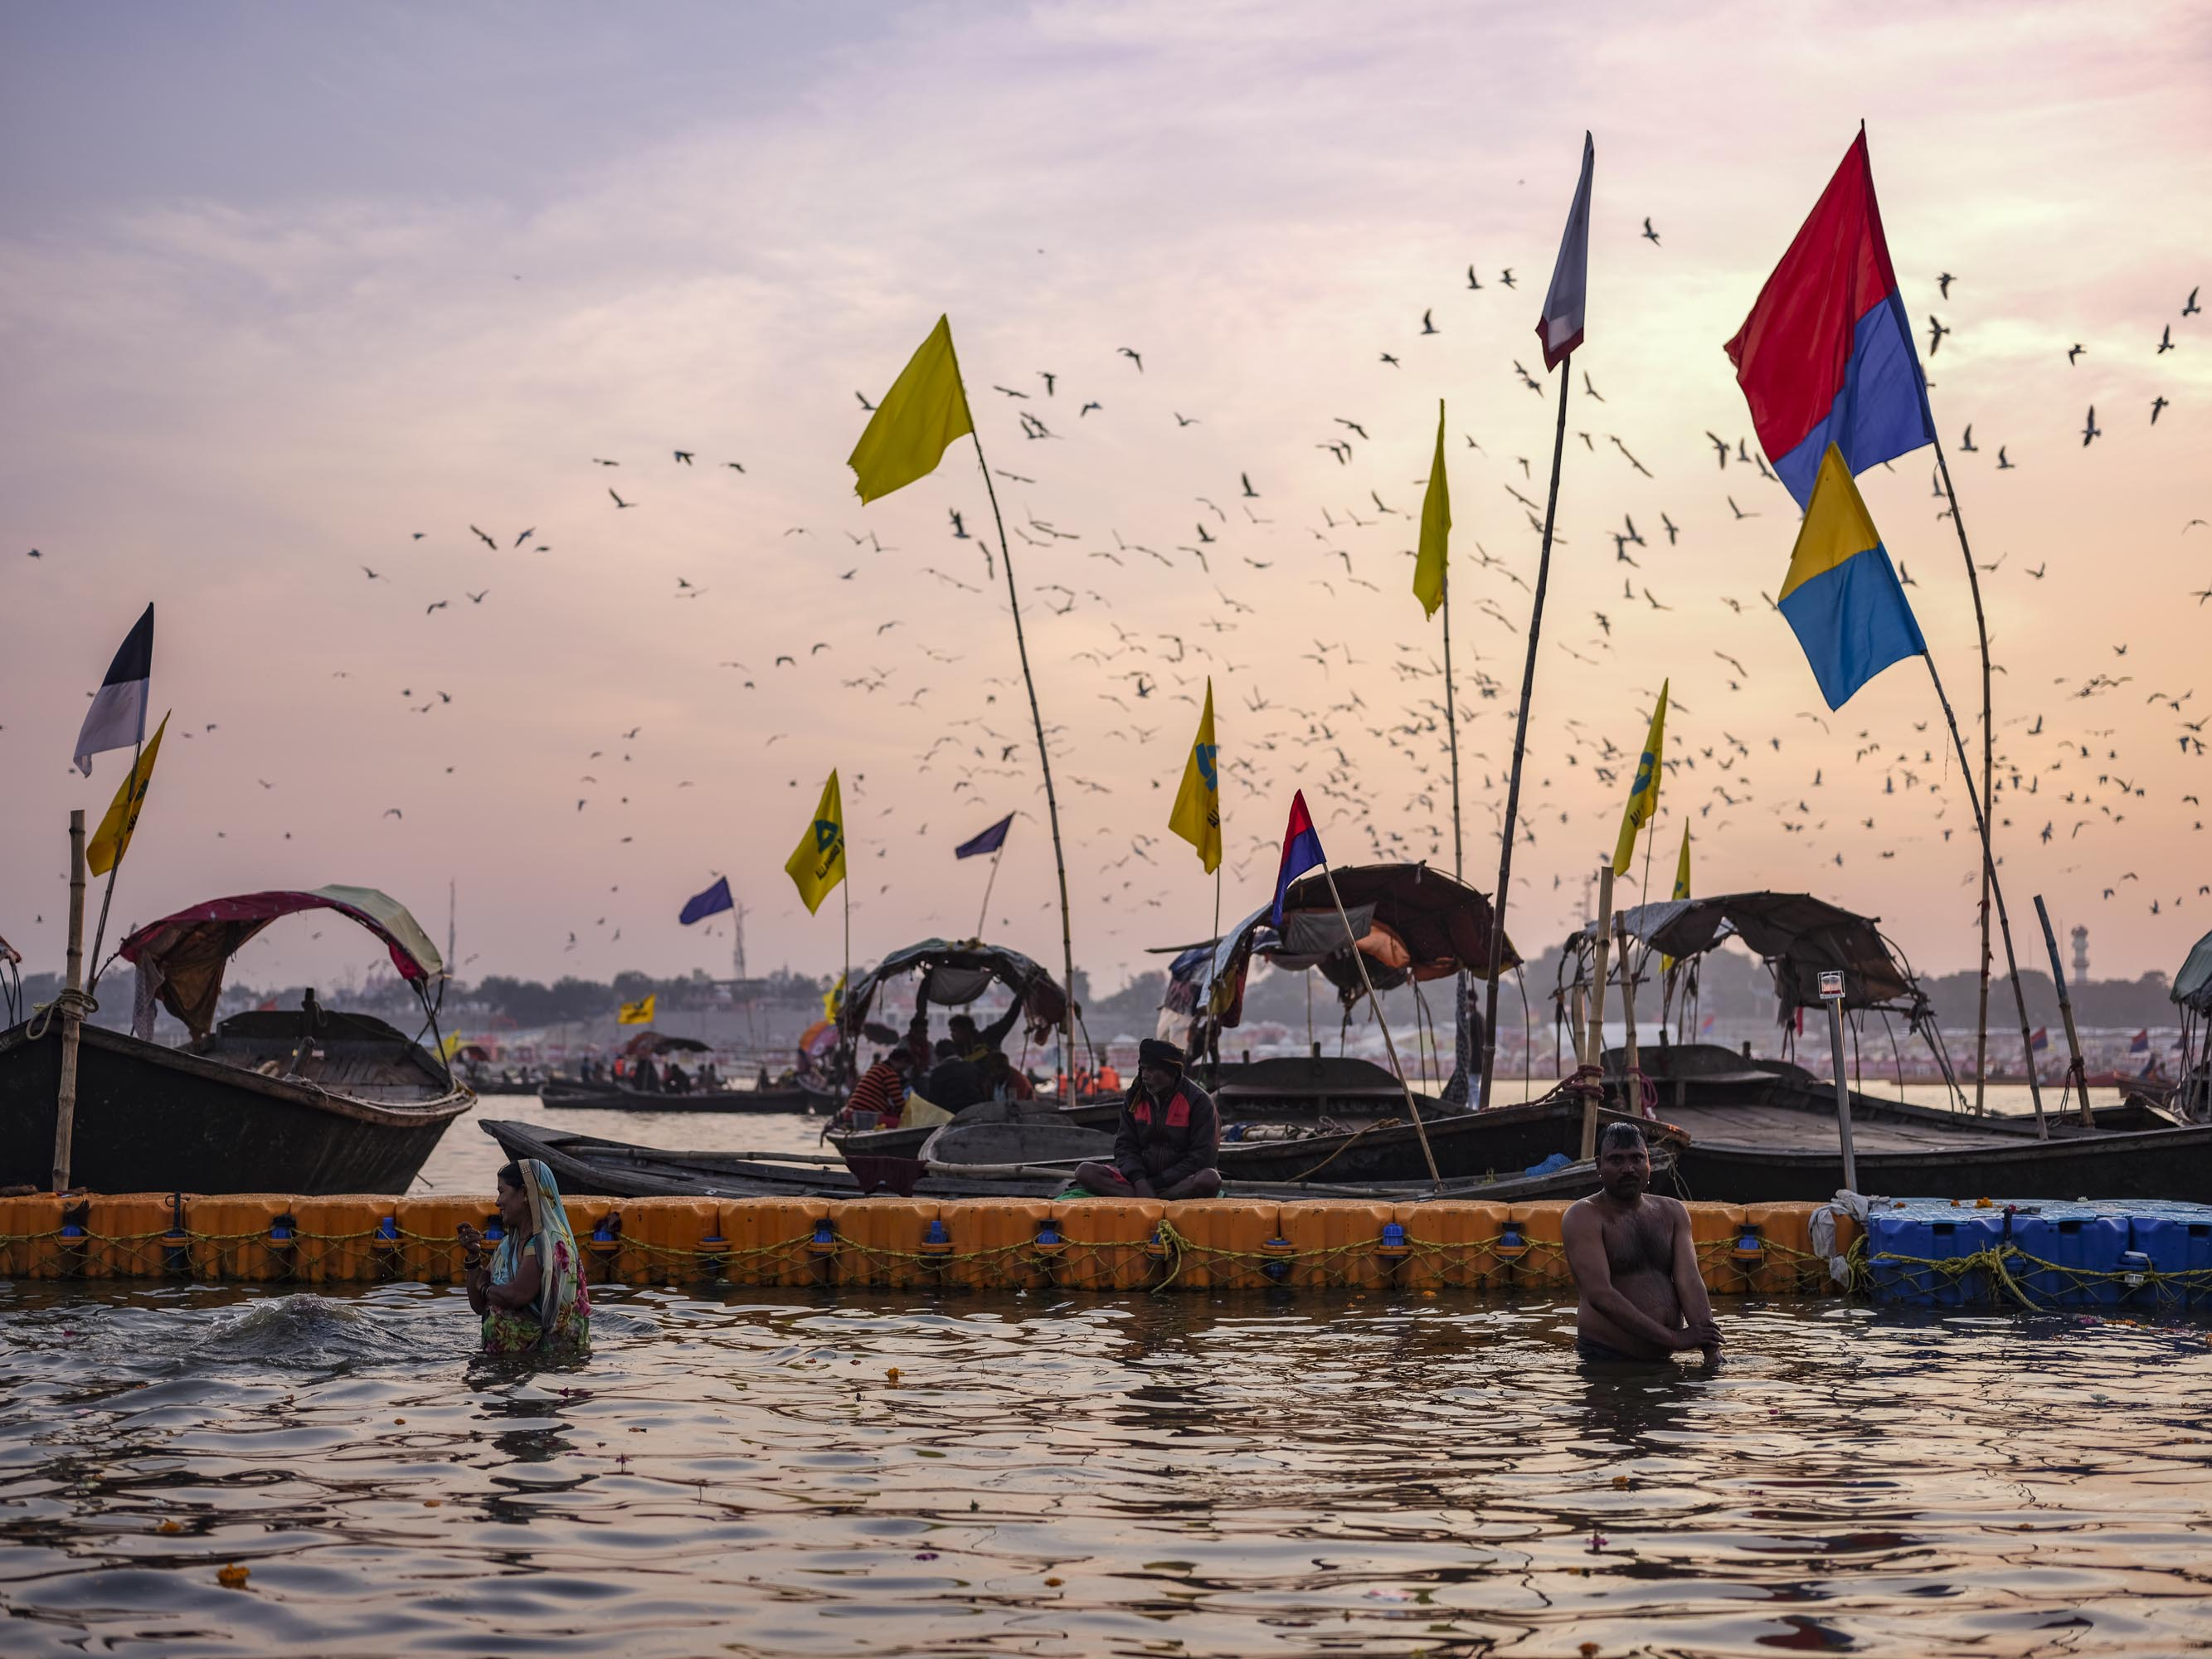 sunset water birds pilgrims Kumbh mela 2019 India Allahabad Prayagraj Ardh hindu religious Festival event rivers photographer jose jeuland photography